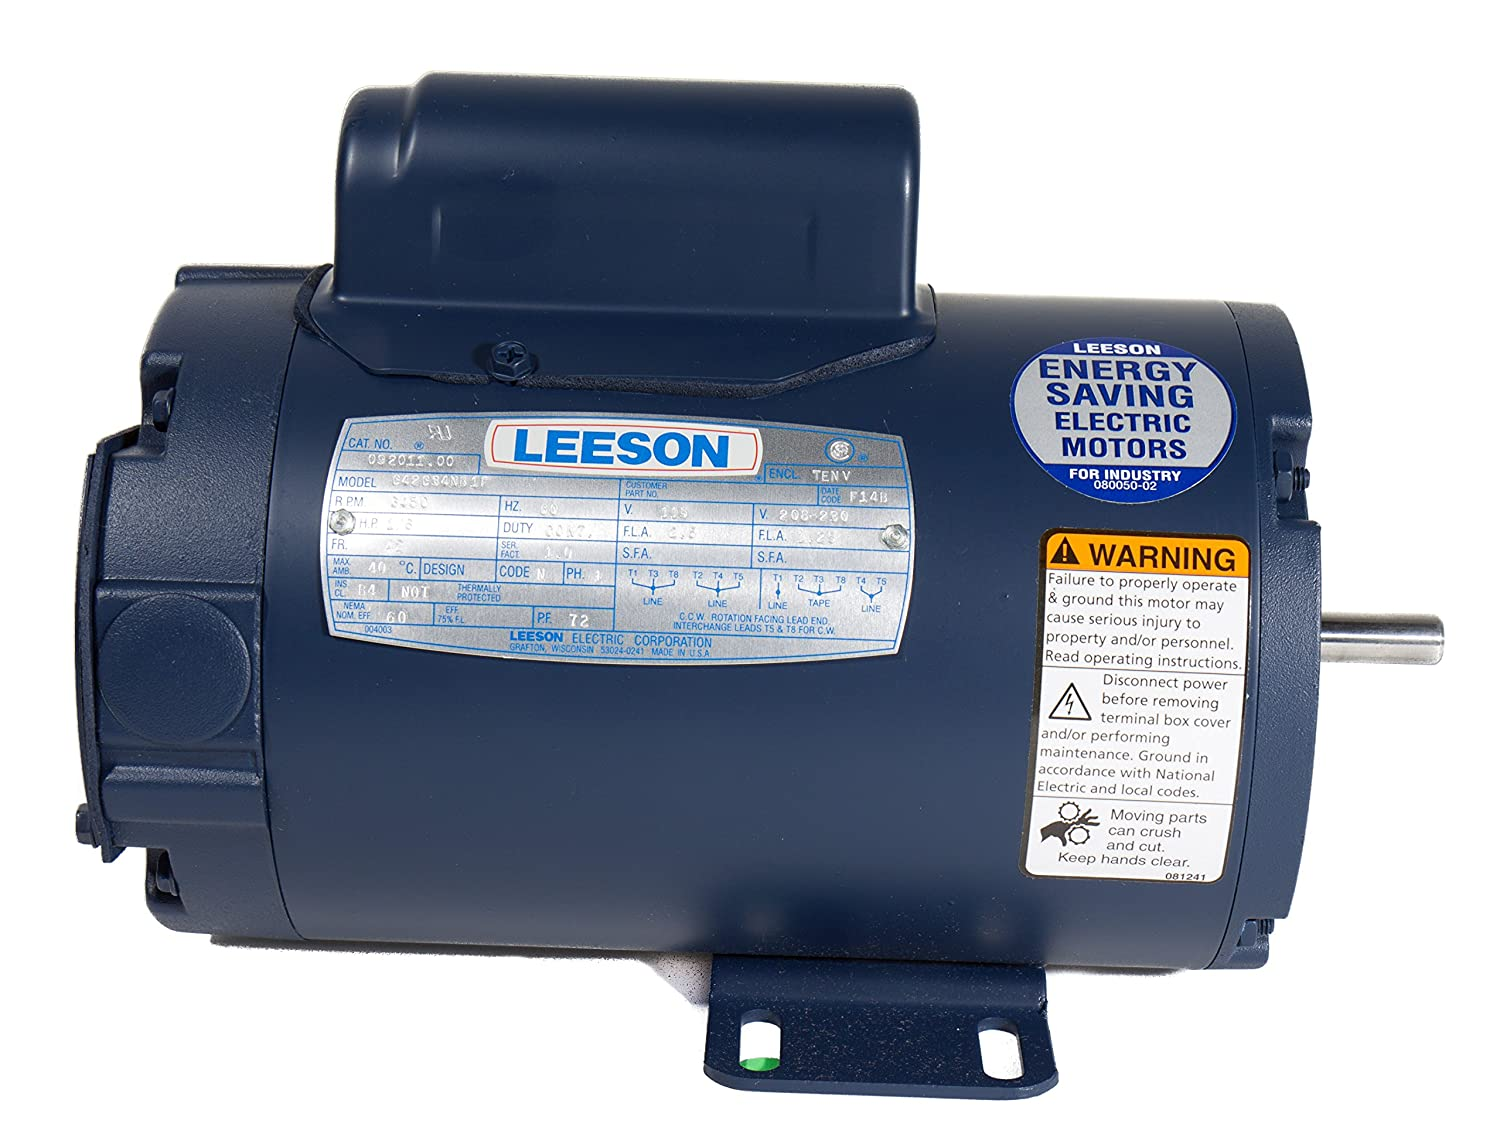 Leeson 11000700 general purpose rigid odp motor 1 phase e56h leeson 11000700 general purpose rigid odp motor 1 phase e56h frame rigid mounting 1hp 1800 rpm 115208 230v voltage 60hz fequency electronic sciox Images